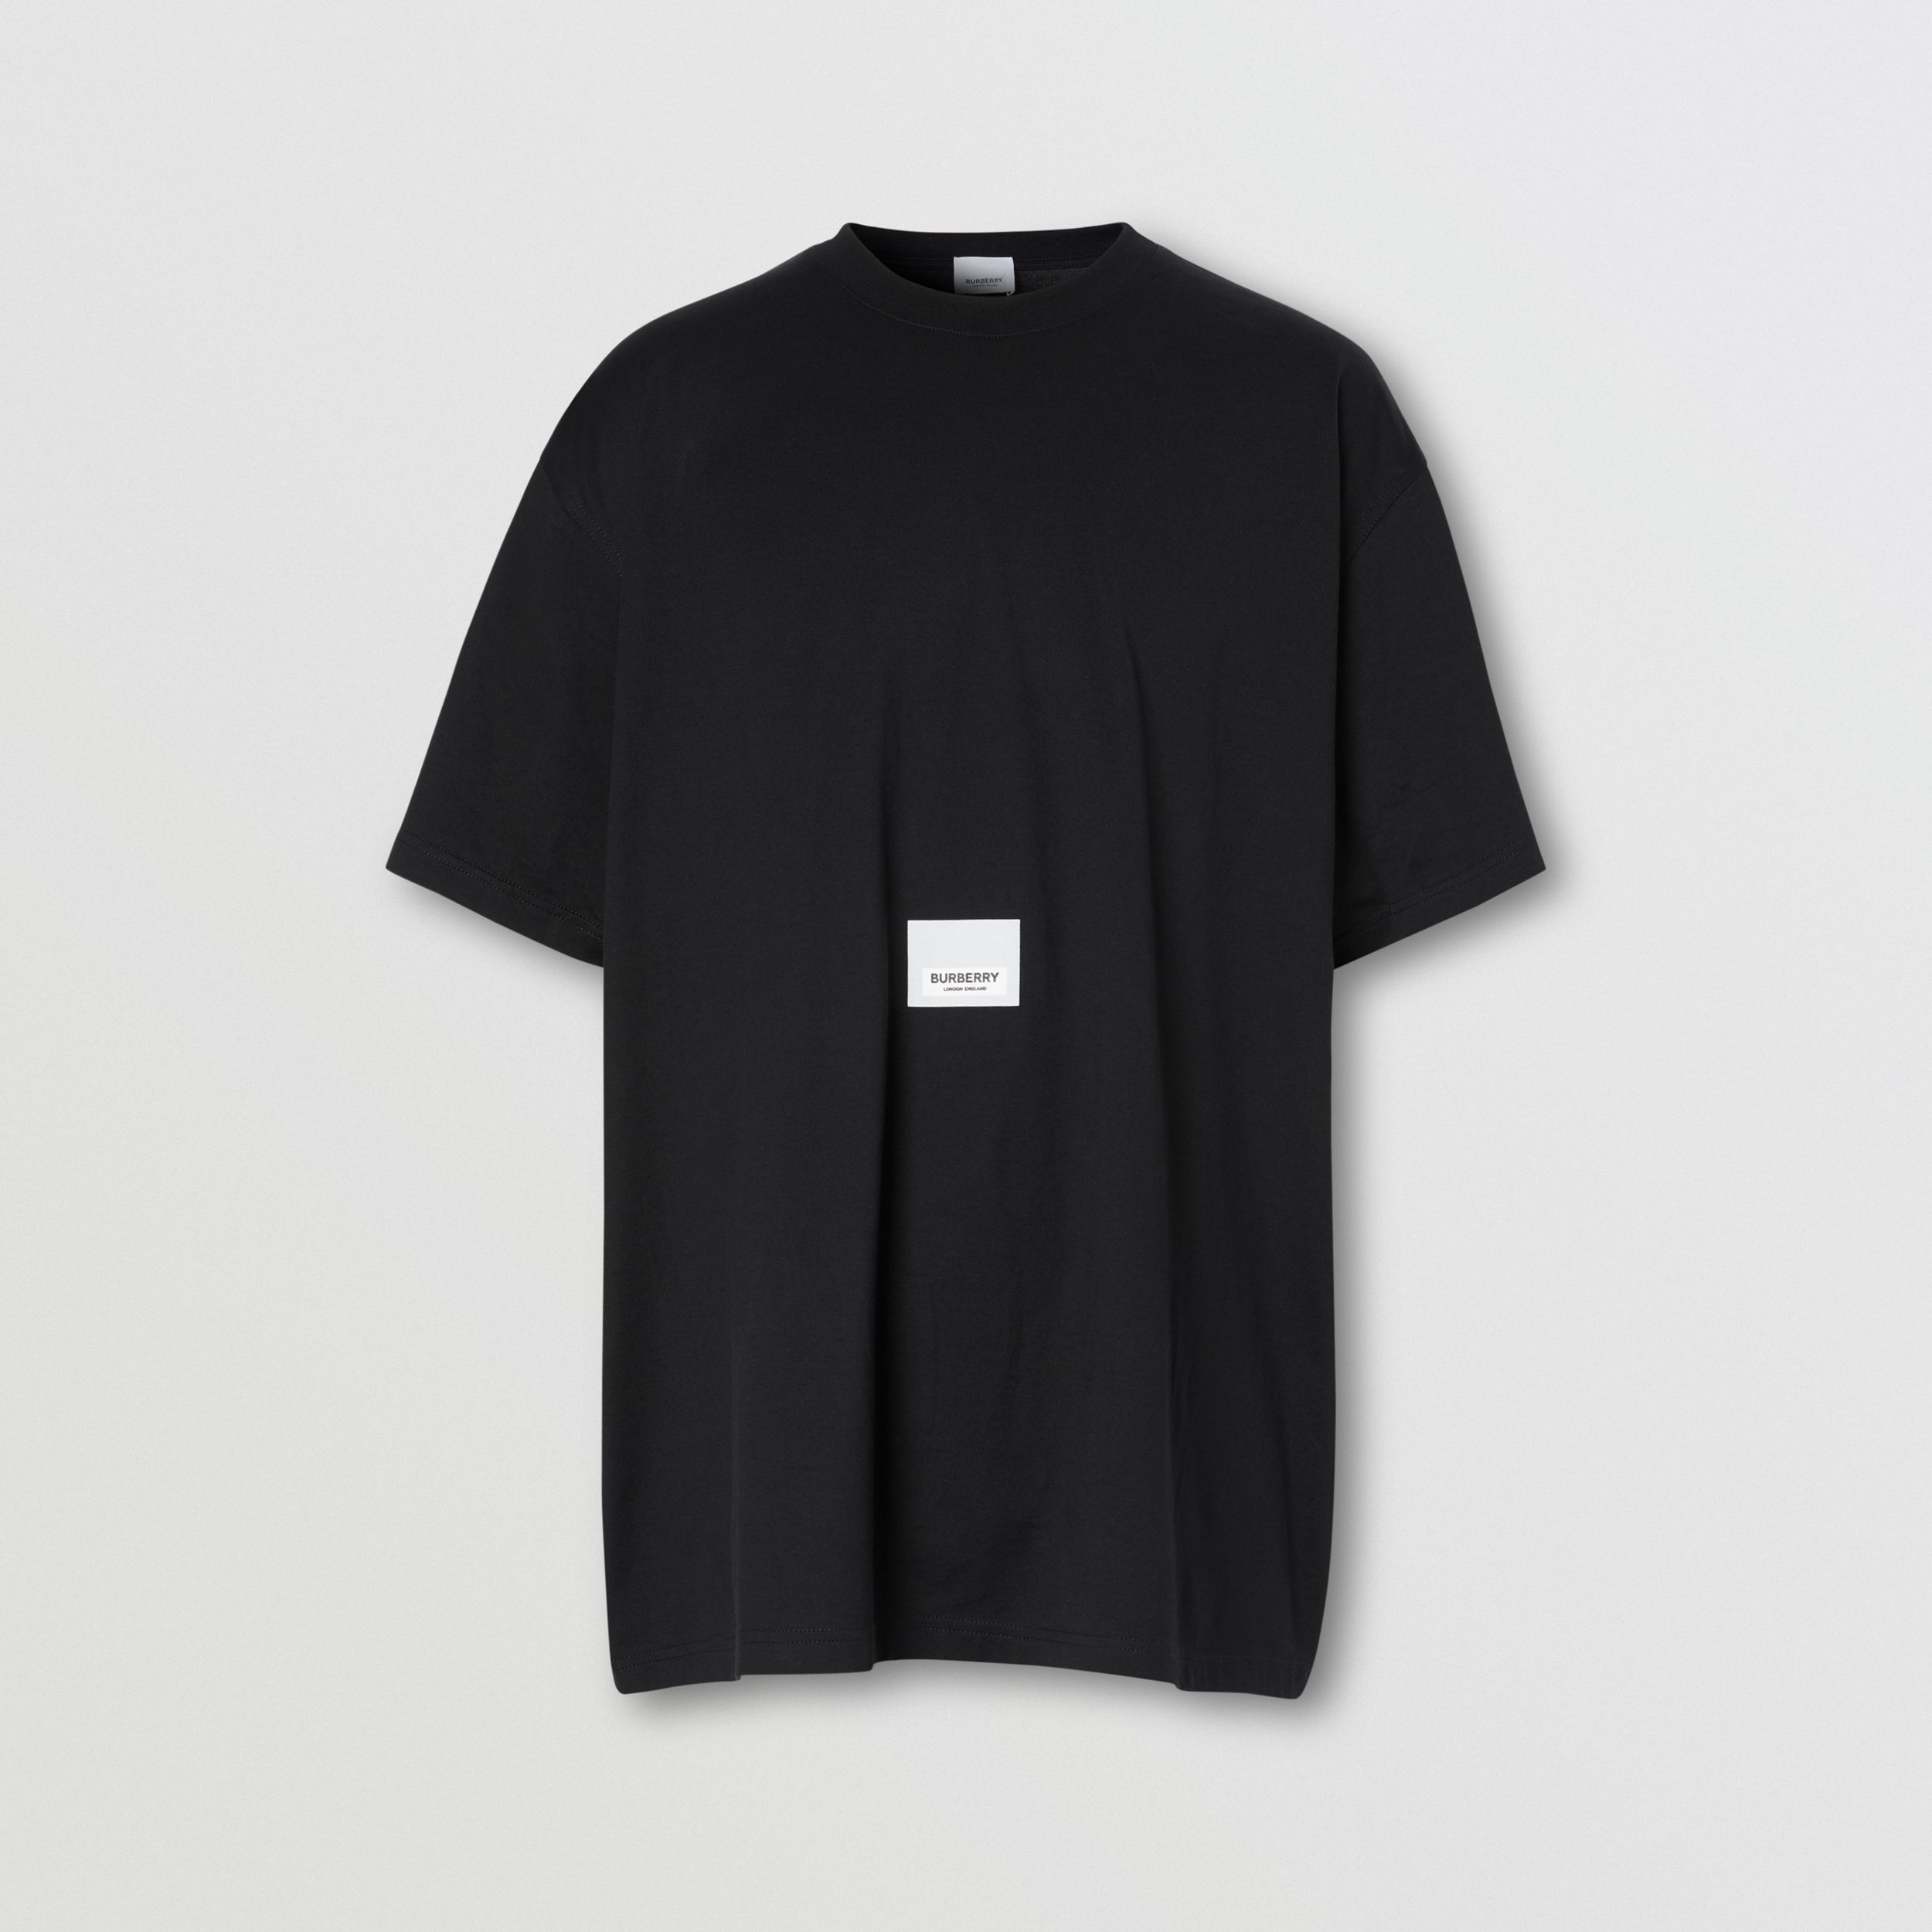 Logo Print Cotton T-shirt in Black | Burberry - 4